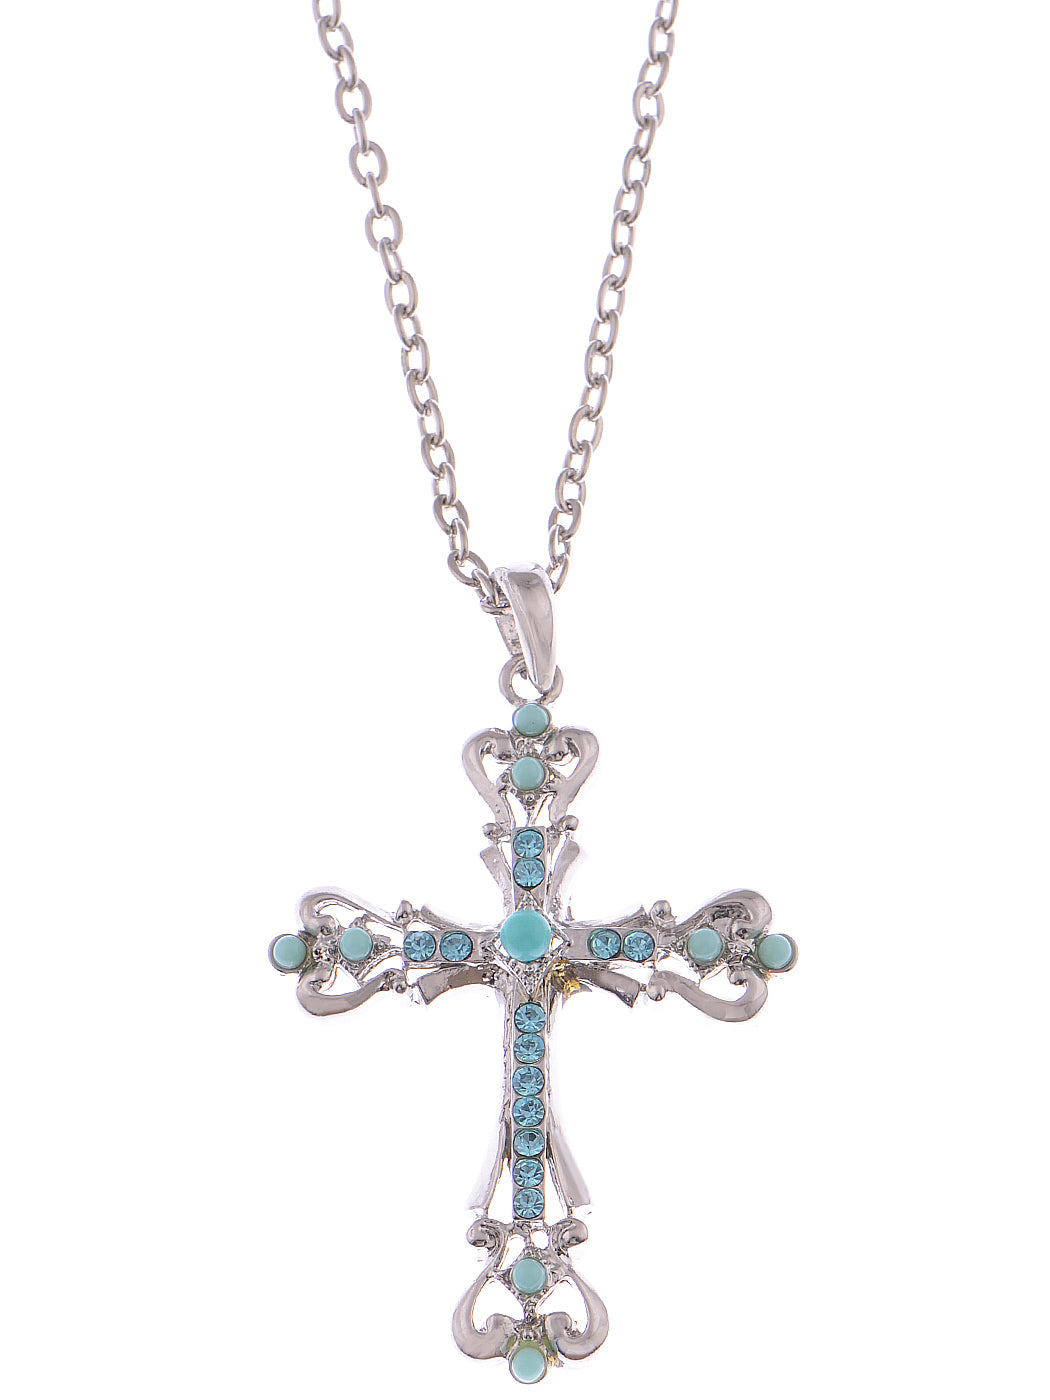 Ornate Cross Pendant Necklace White Black Blue Green Pink